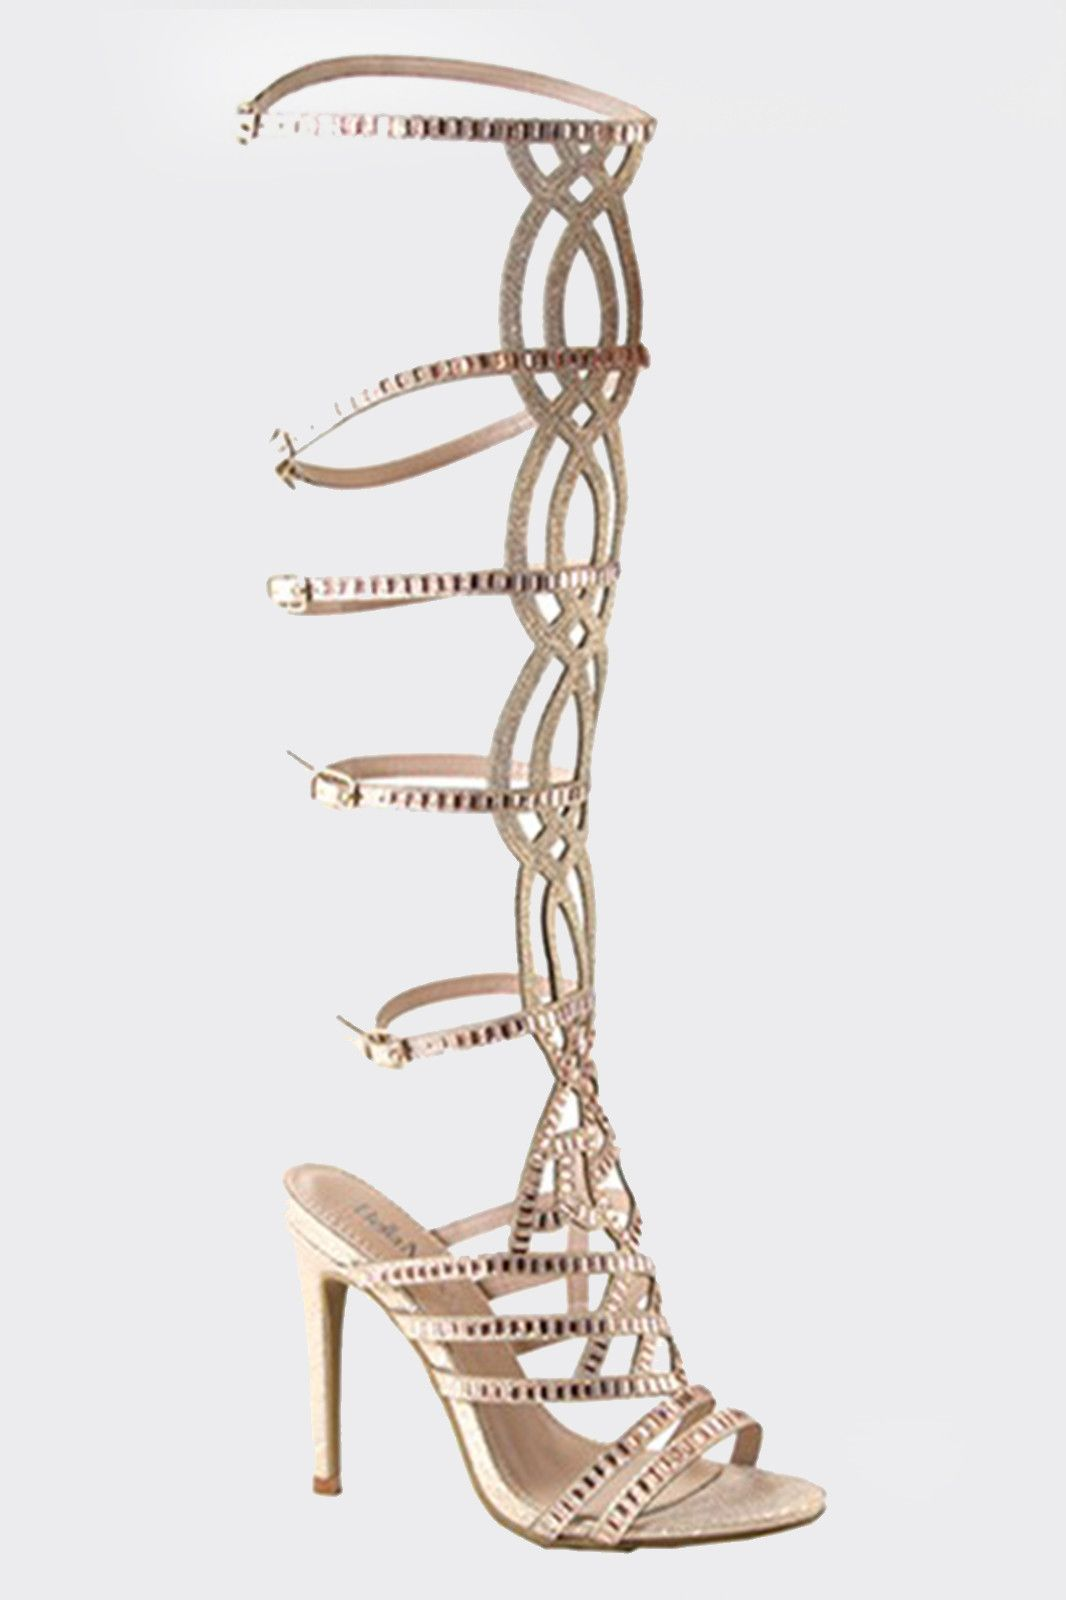 7e3dd0476a6 Knee High Glitter Gladiator Heels | Products | Gladiator heels ...